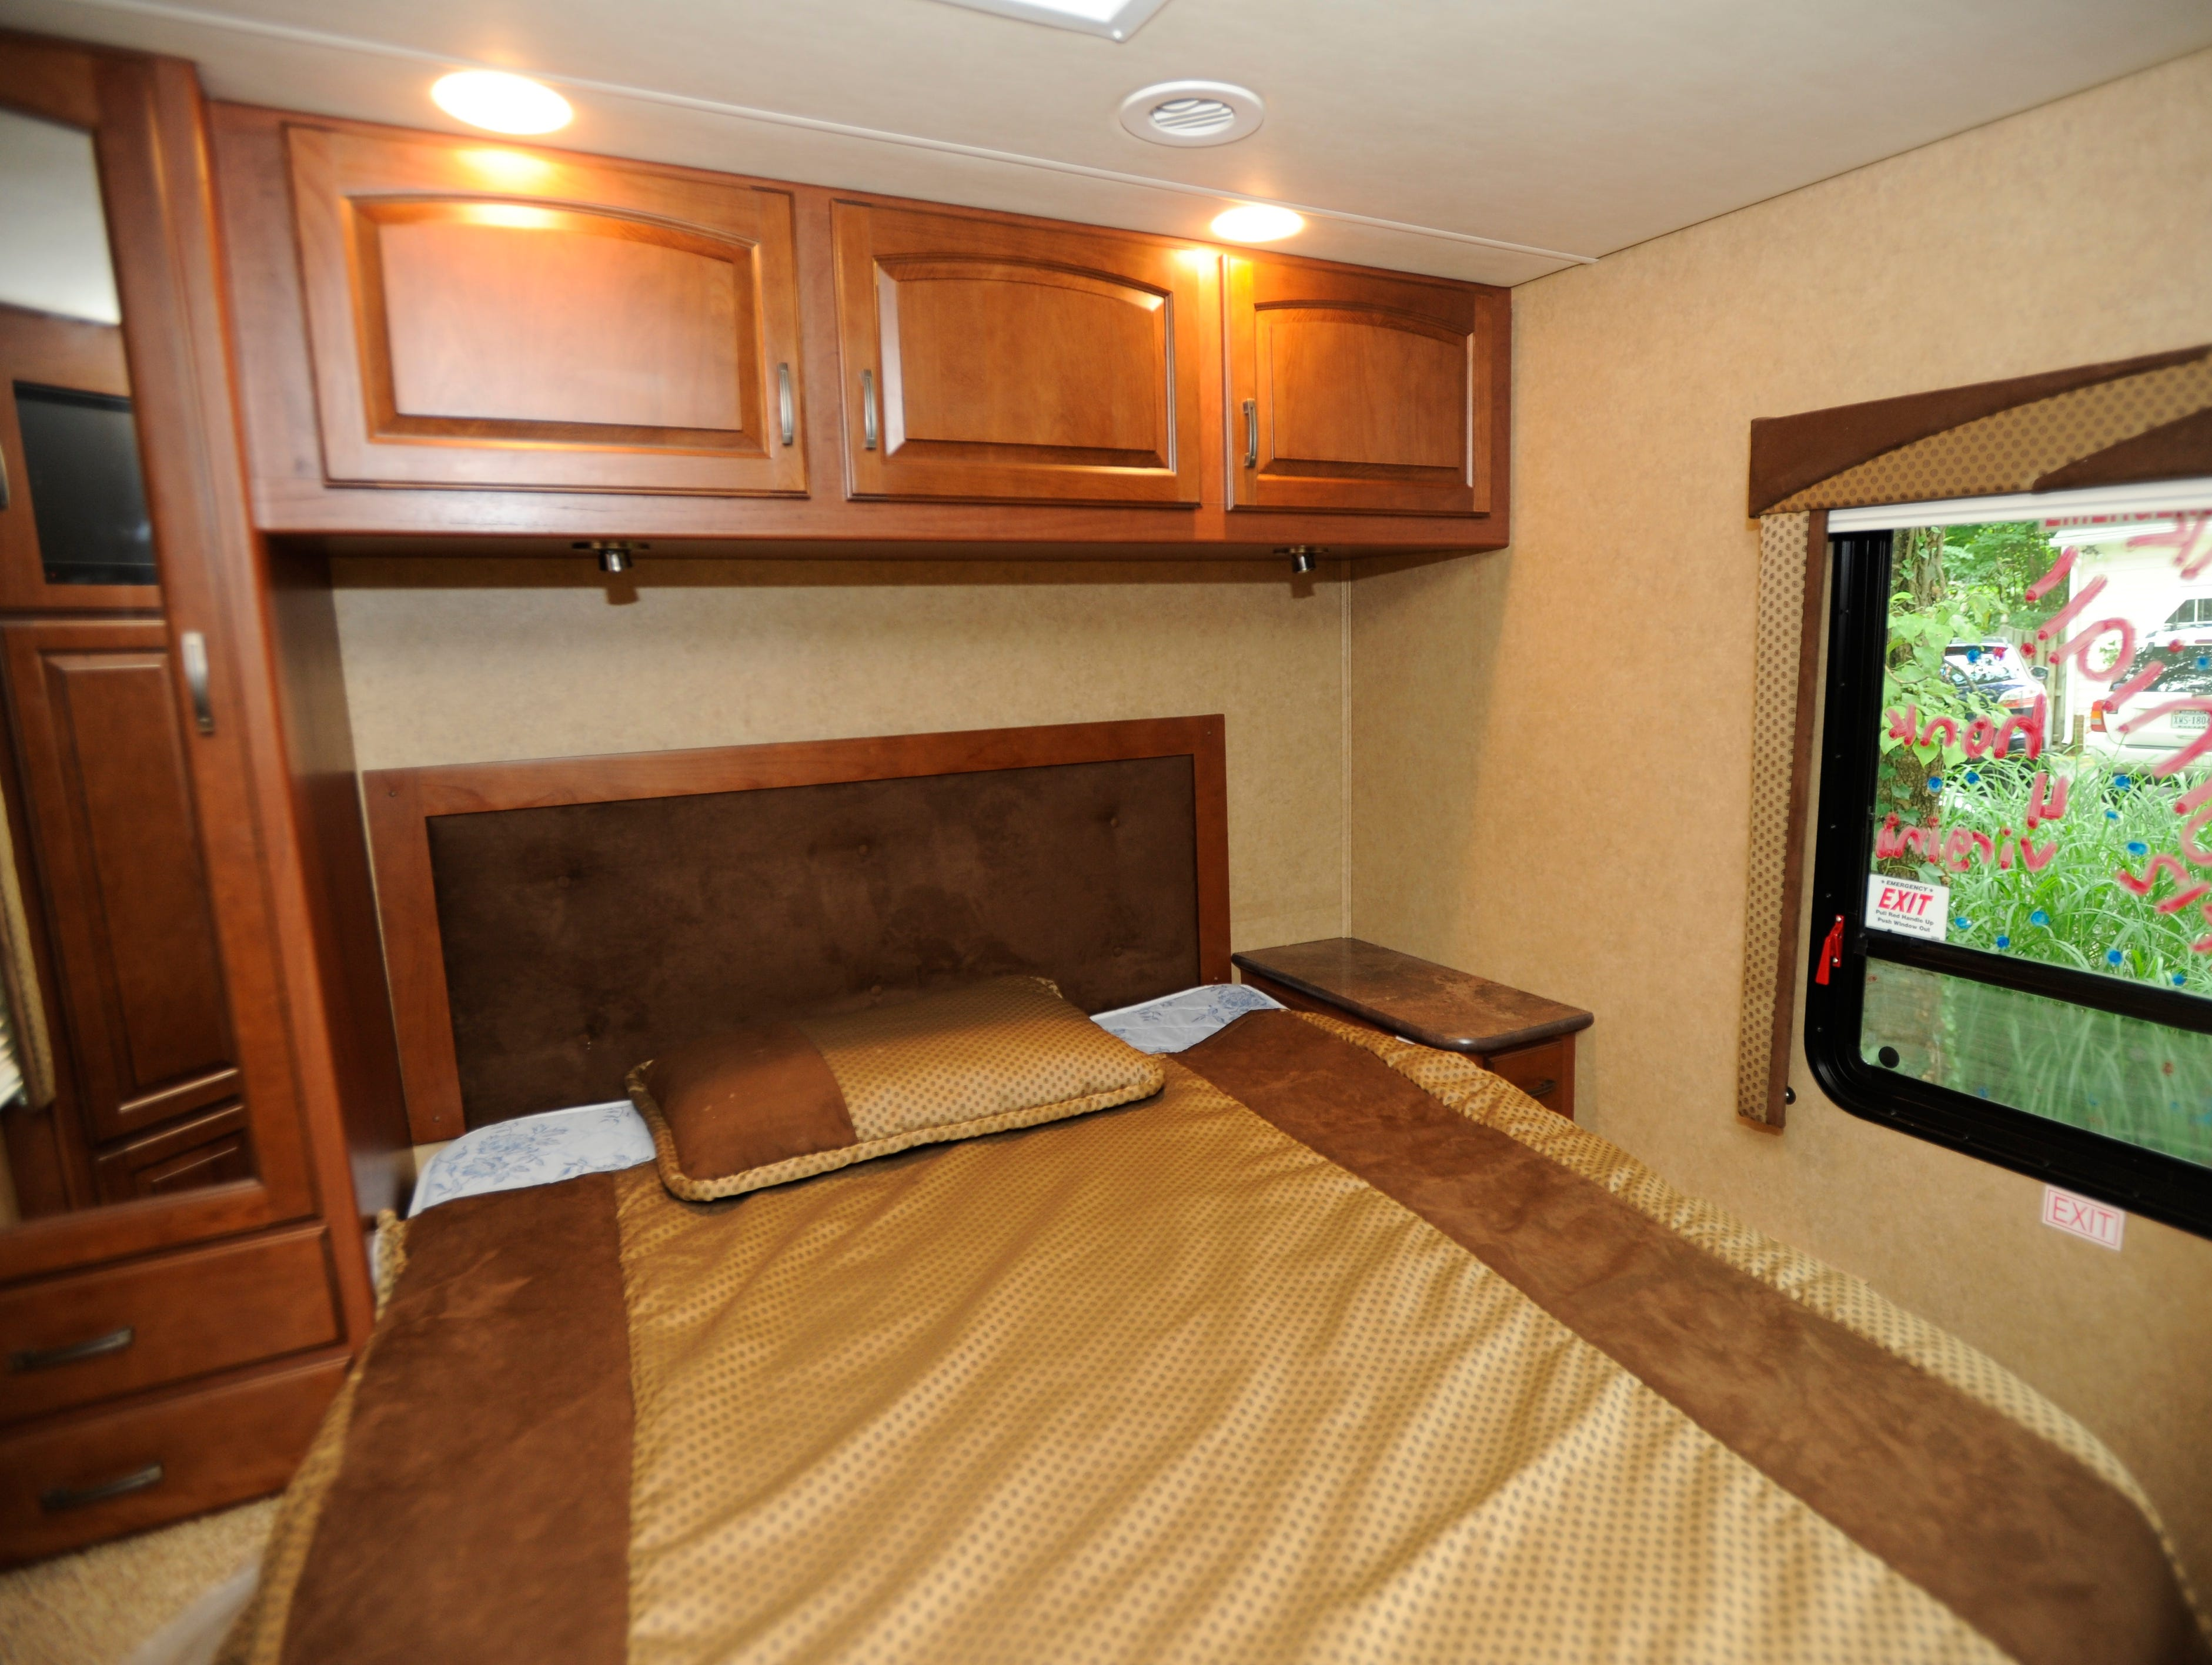 The back end of the RV is a bedroom.